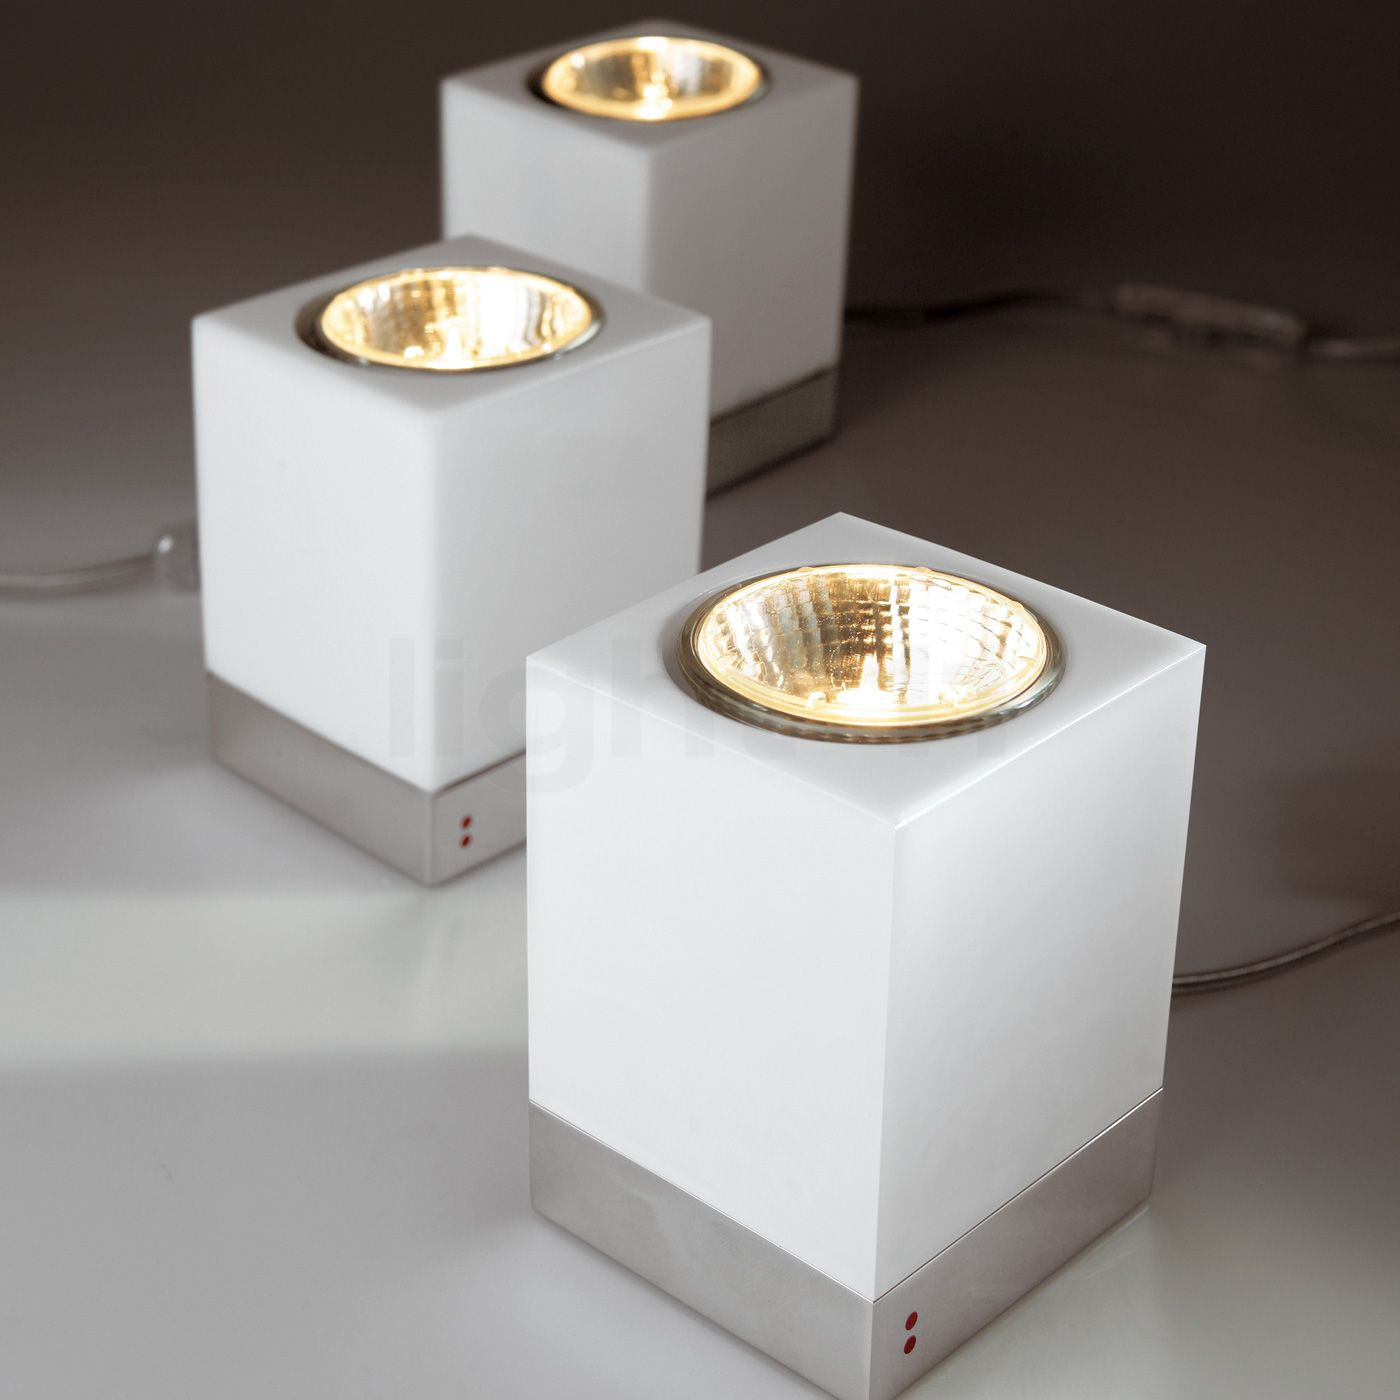 Fabbian cubetto table lamp gu10 buy at light11 geotapseo Images